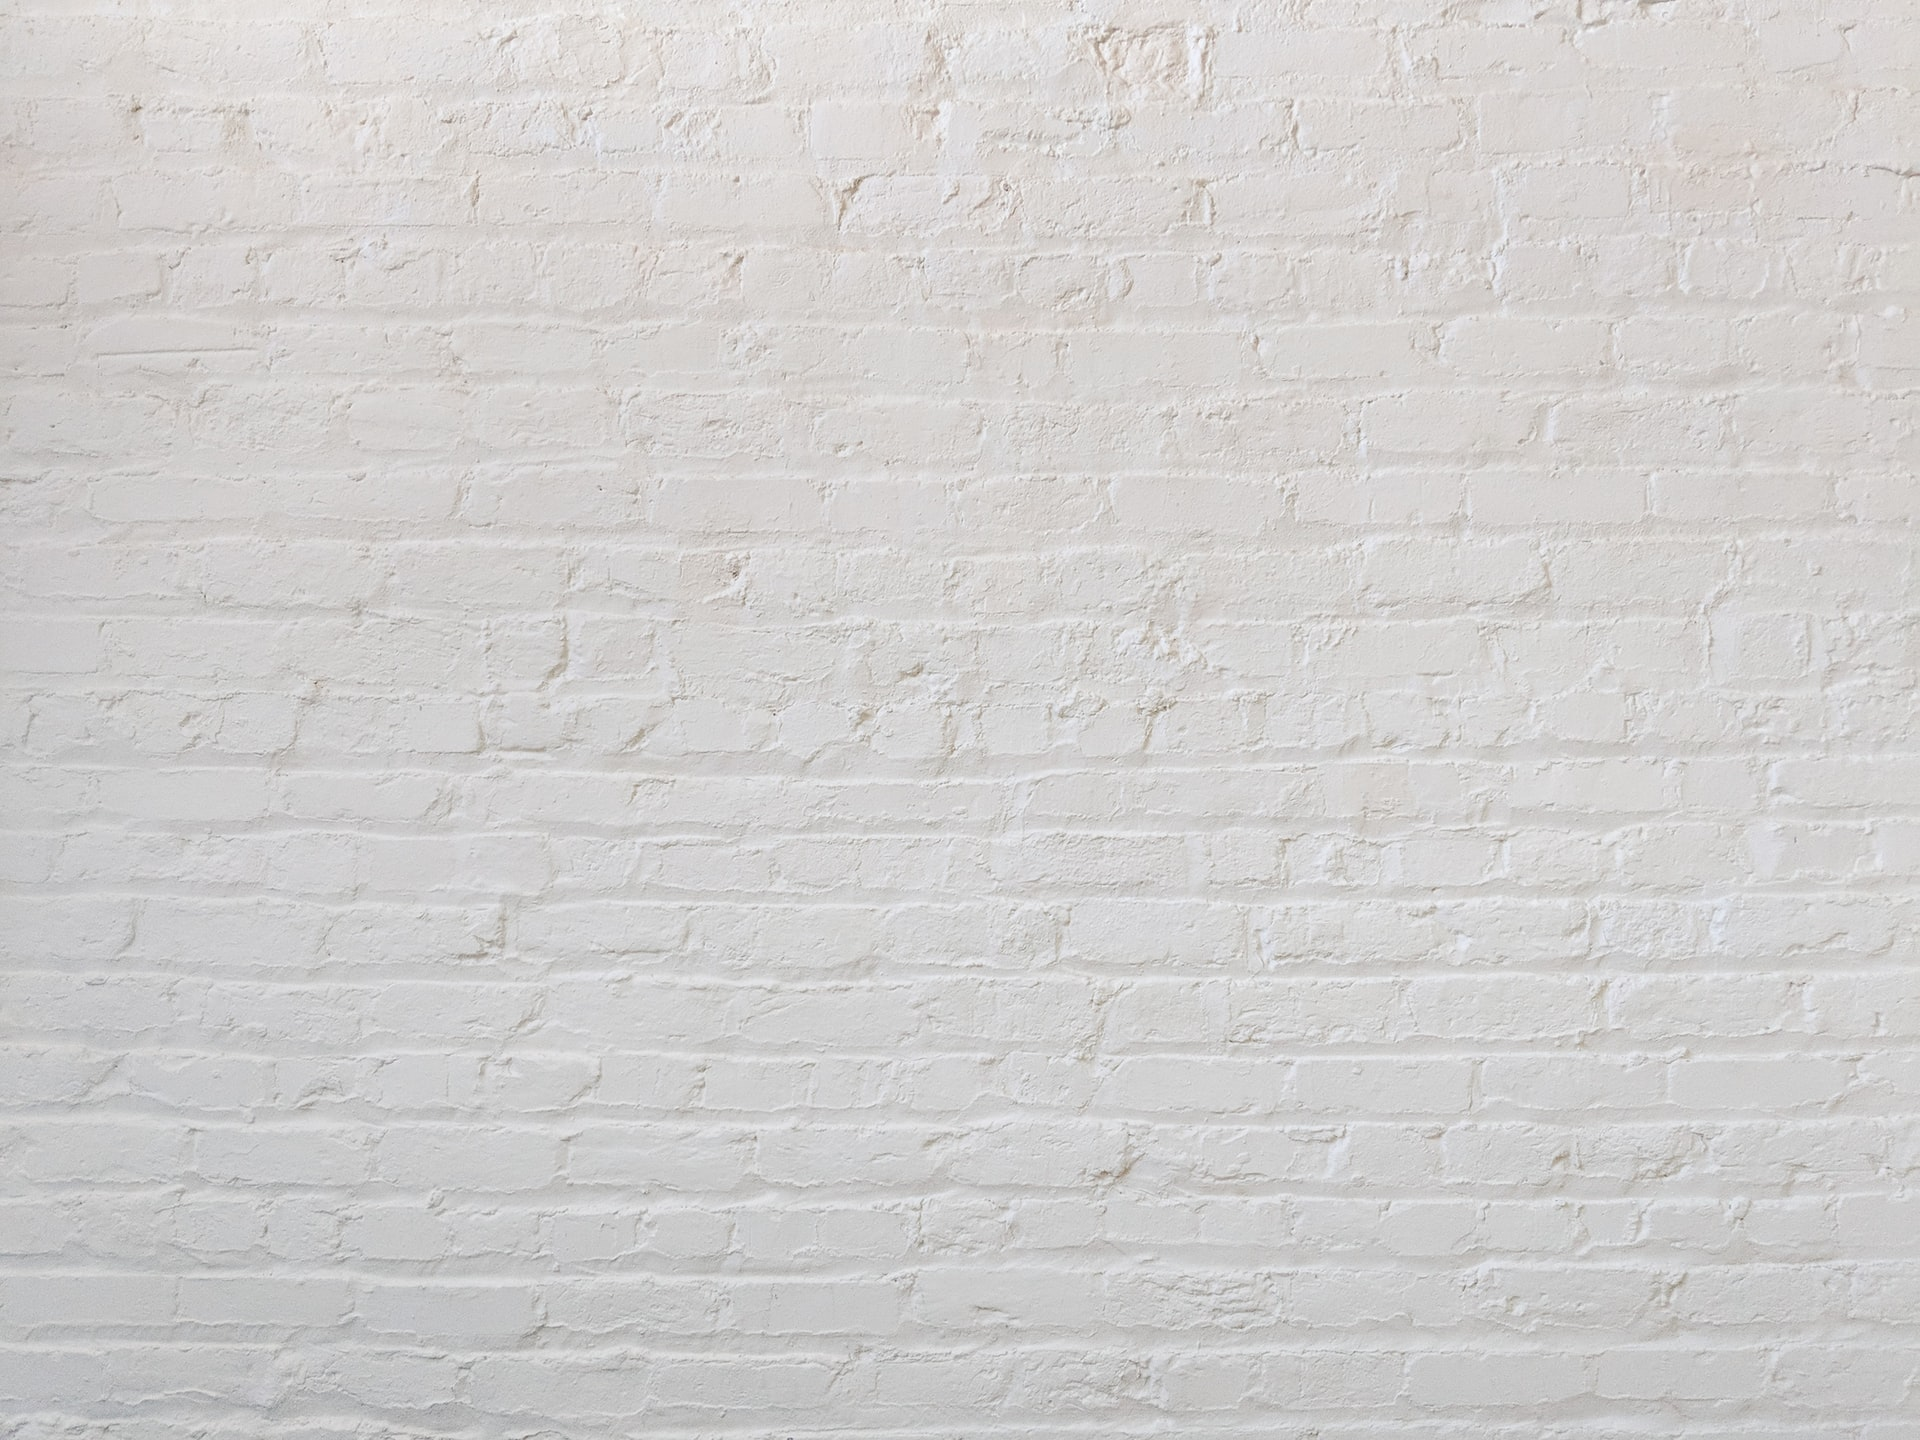 an image of a brick white wall